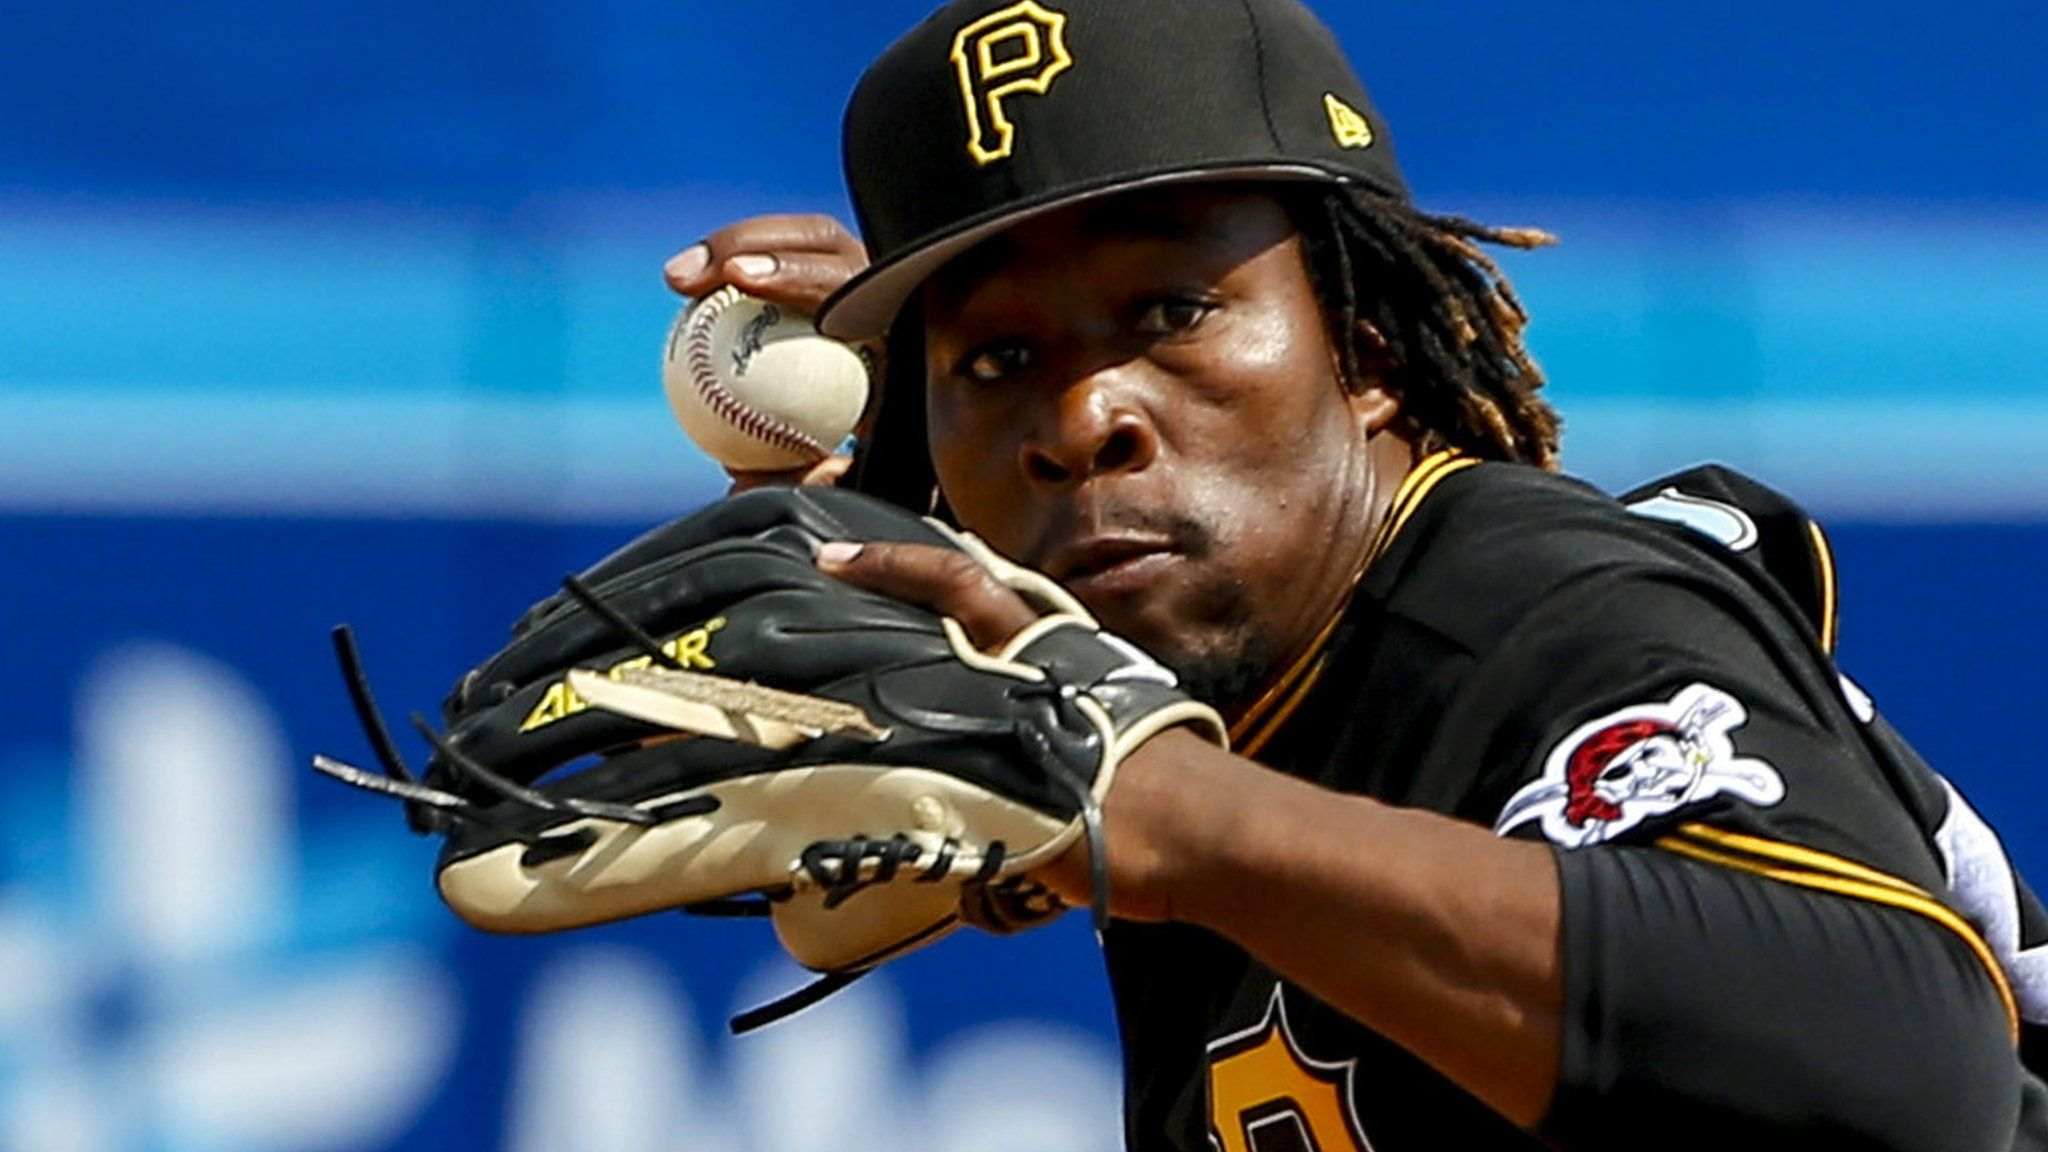 27 year old south african gift ngoepe makes major league baseball 27 year old south african gift ngoepe makes major league baseball in america lekker blog south african pinterest south africa and africa negle Choice Image